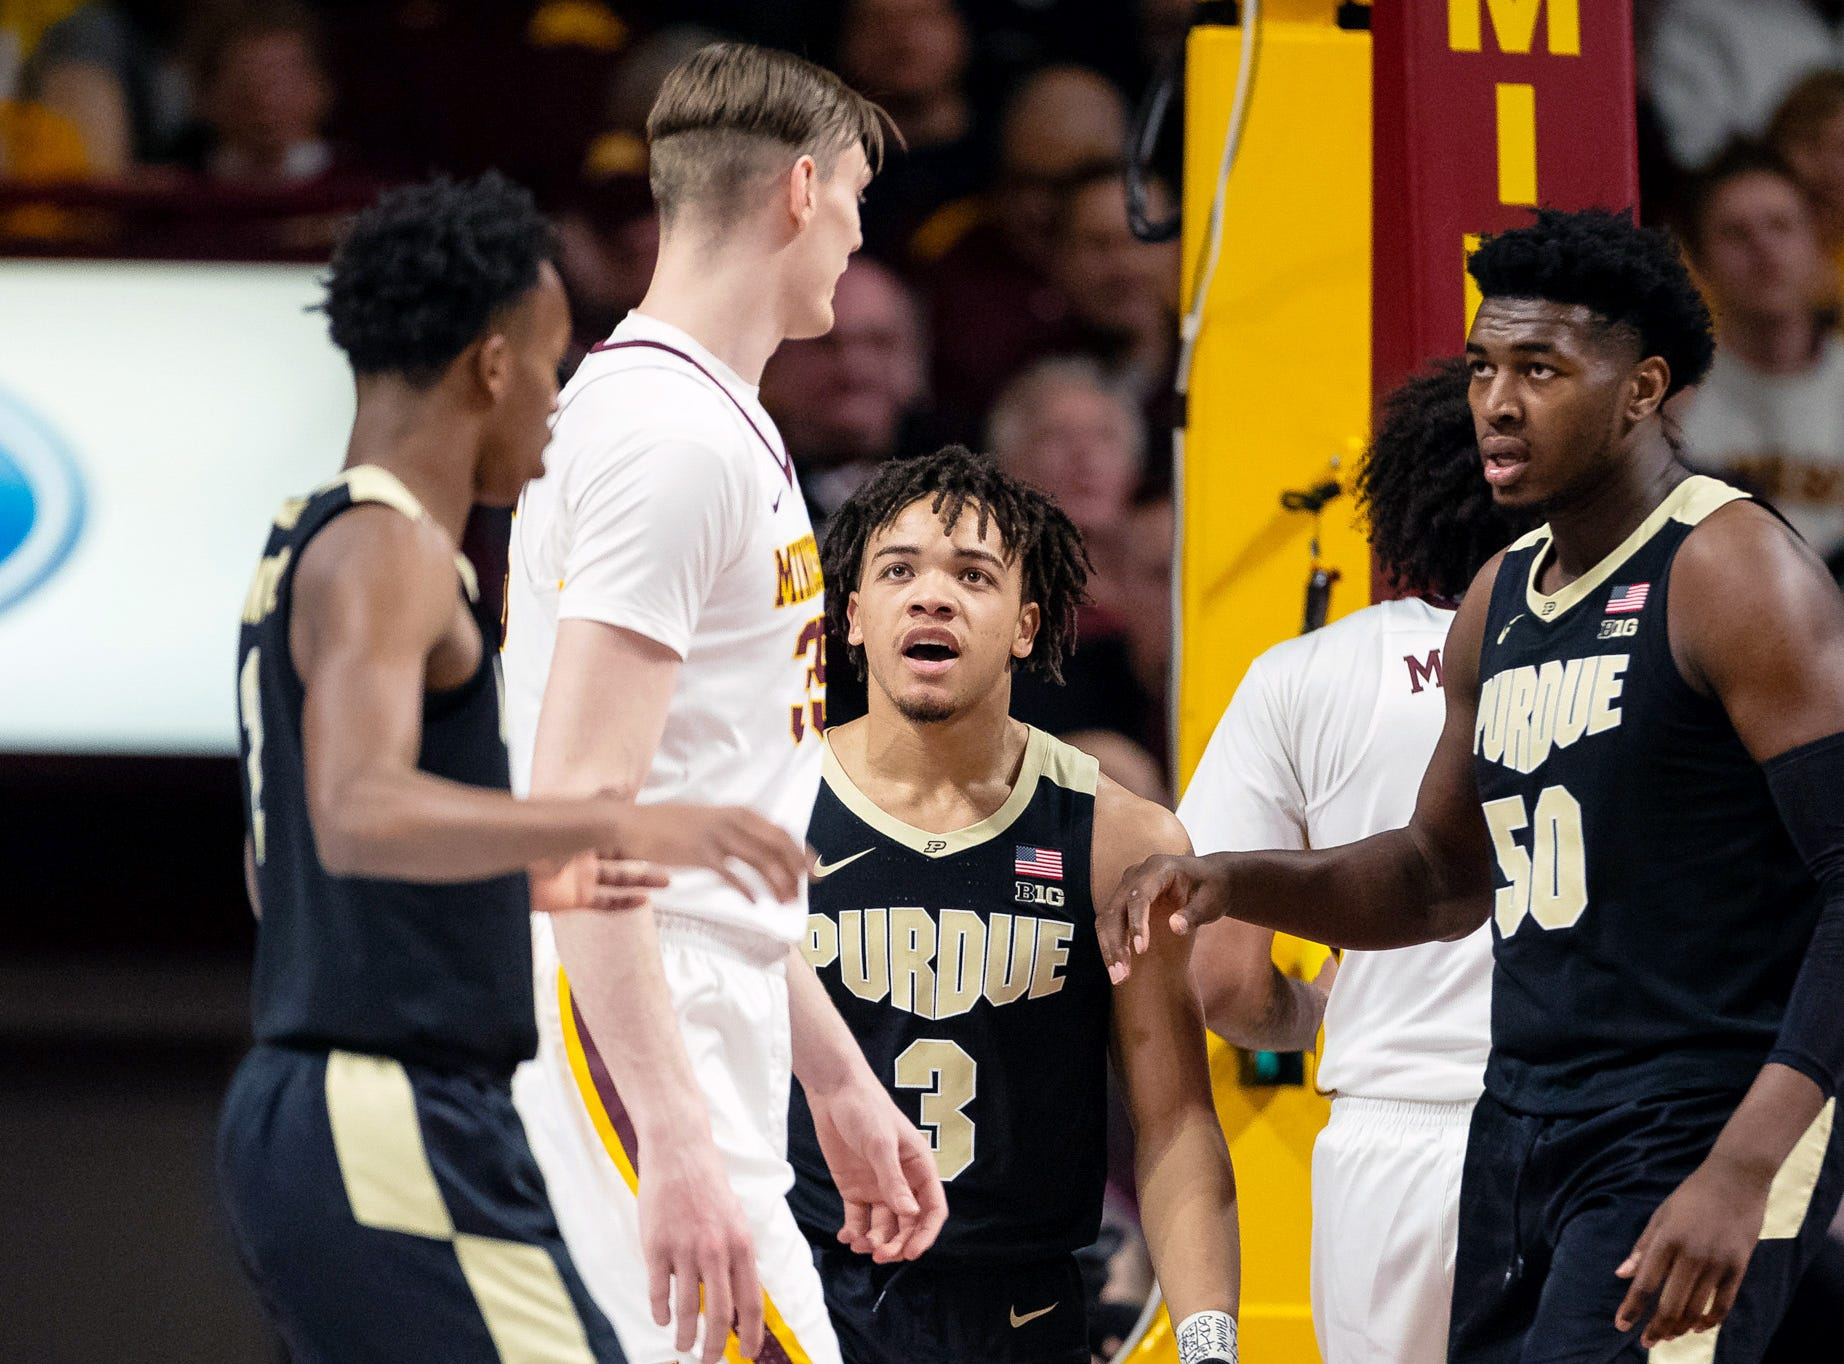 Mar 5, 2019; Minneapolis, MN, USA; Purdue Boilermakers guard Carsen Edwards (3) and Minnesota Gophers center Matz Stockman (35) exchange words during the first half at Williams Arena. Mandatory Credit: Harrison Barden-USA TODAY Sports